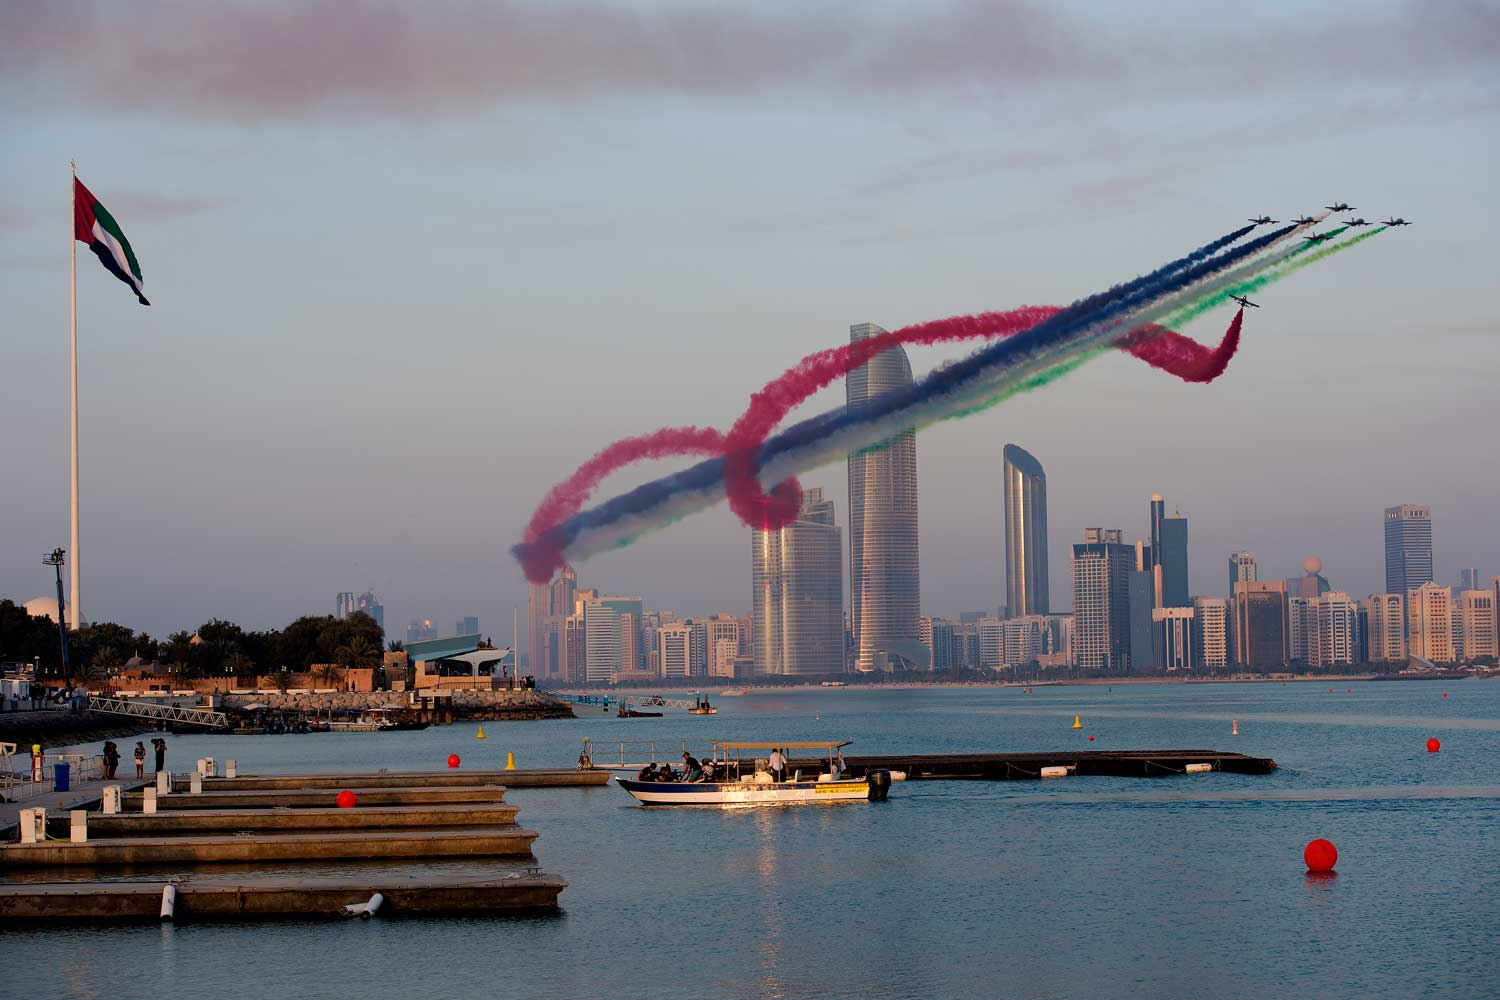 United Arab Emirates Aerobatic Team Al Fursan puts on a show after the Red Bull Air Race World Championship.